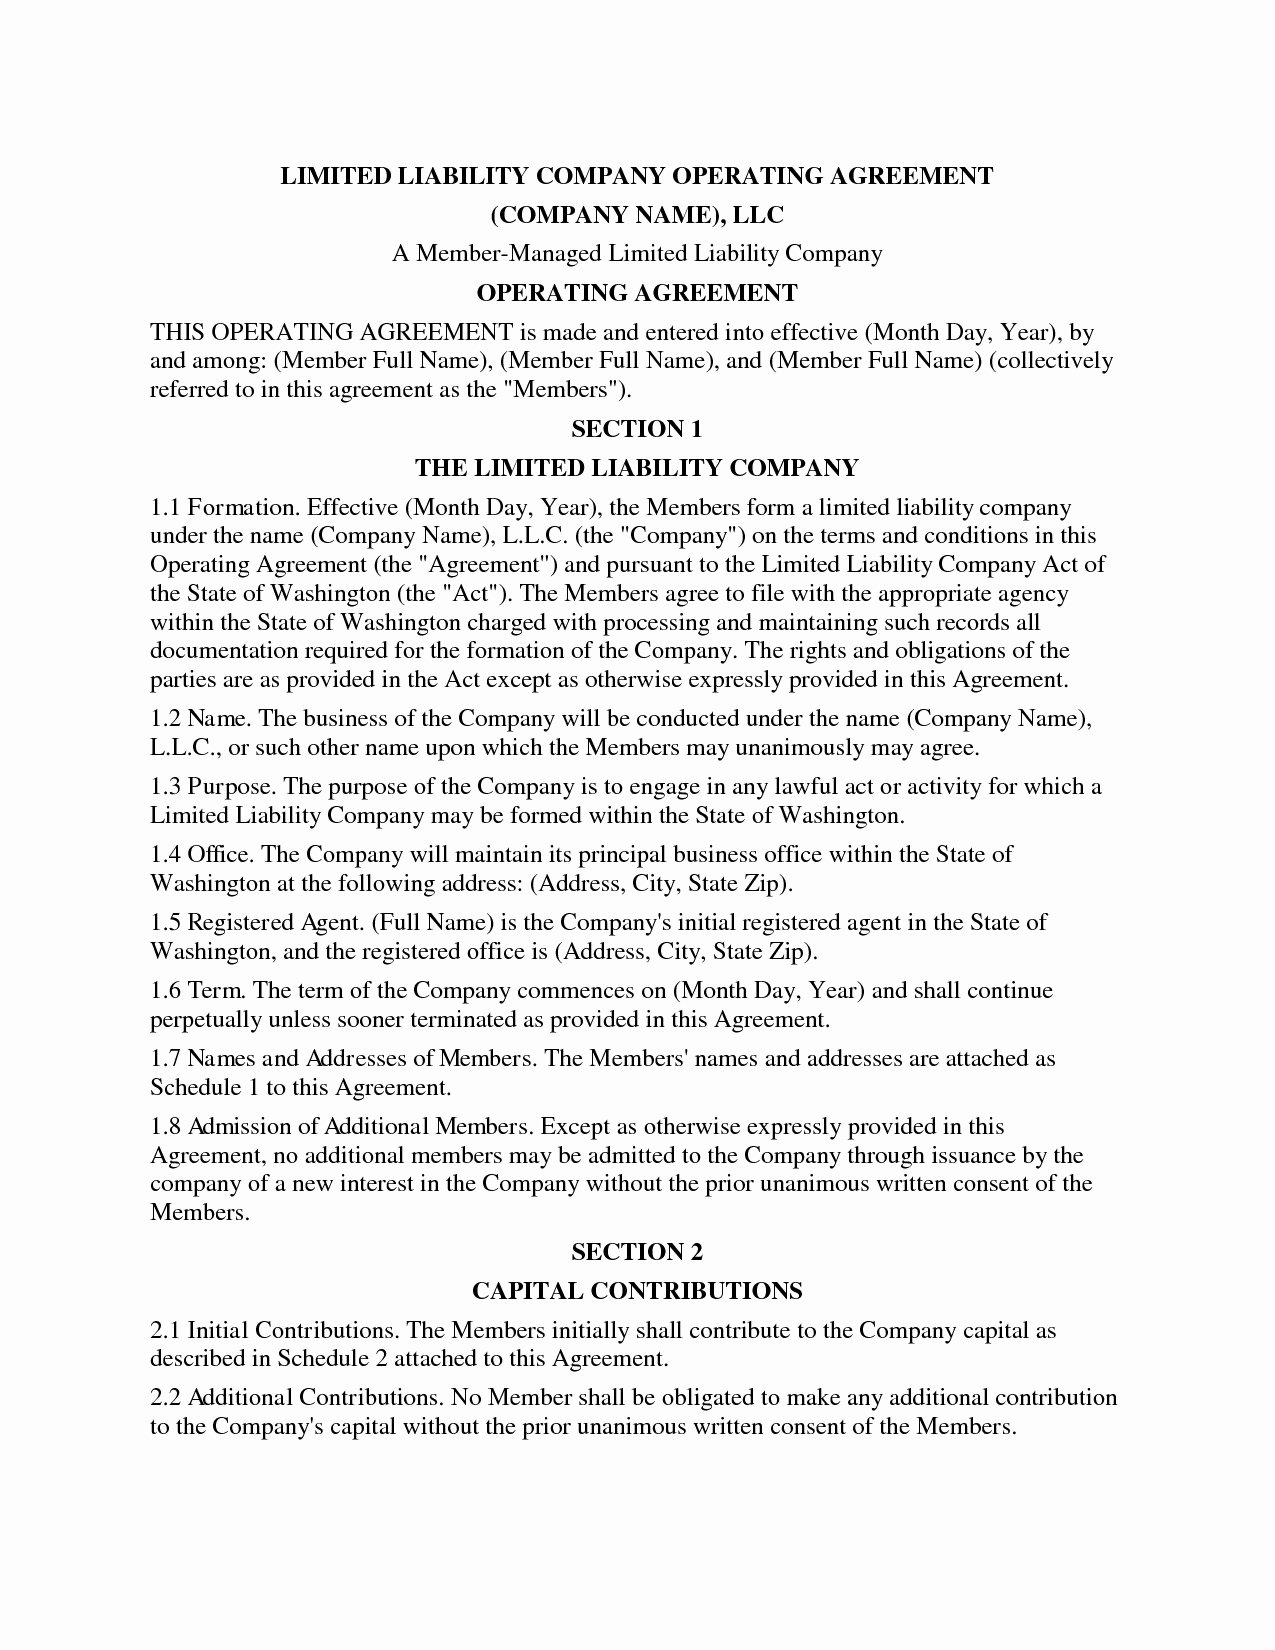 Cottage Operating Agreement Template Fresh 50 Plete Cottage Operating Agreement Template Vo